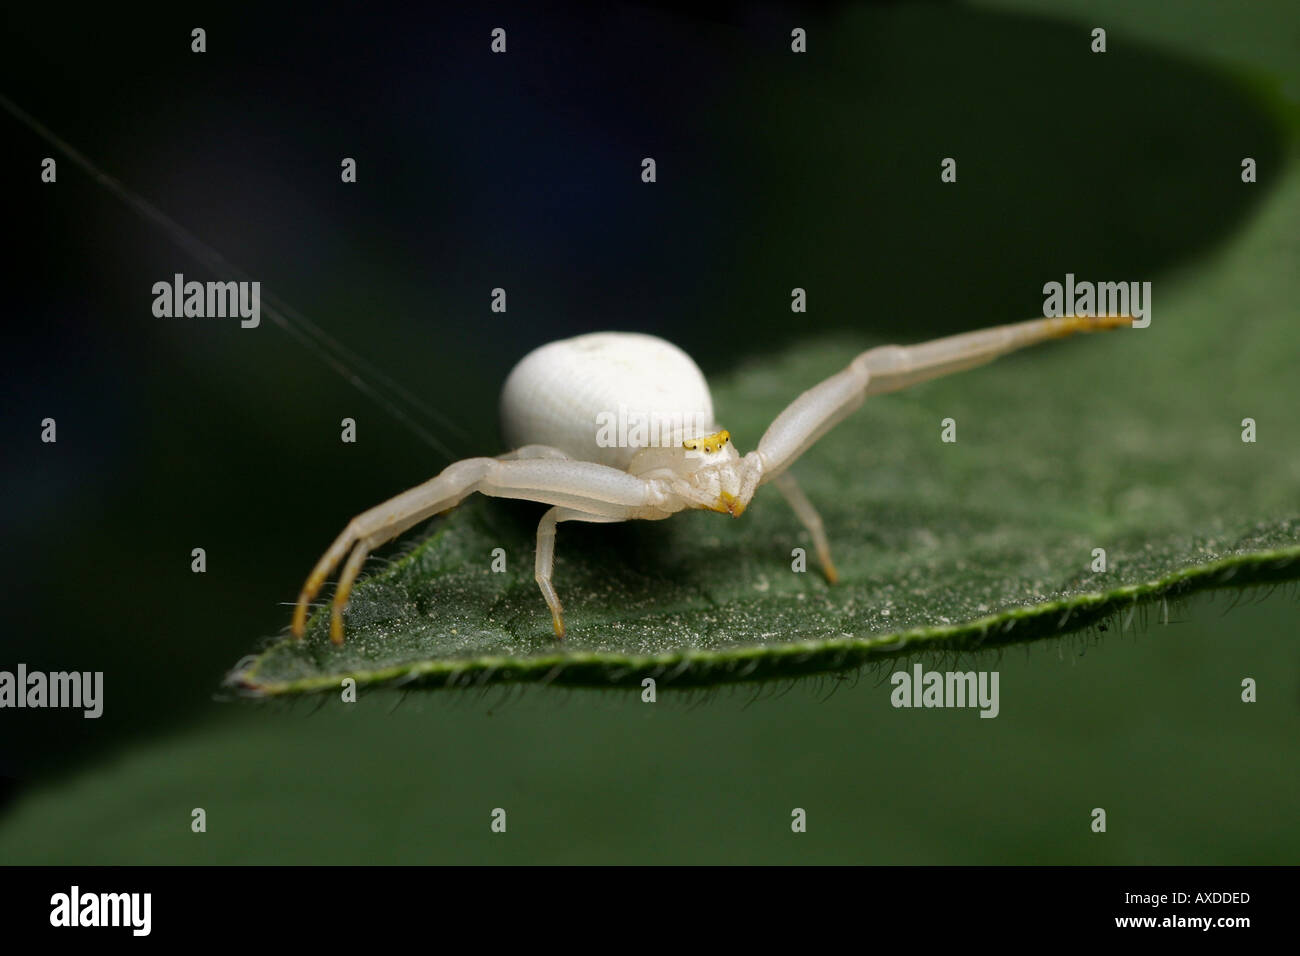 White Goldenrod Crab spider - Misumena vatia Stock Photo